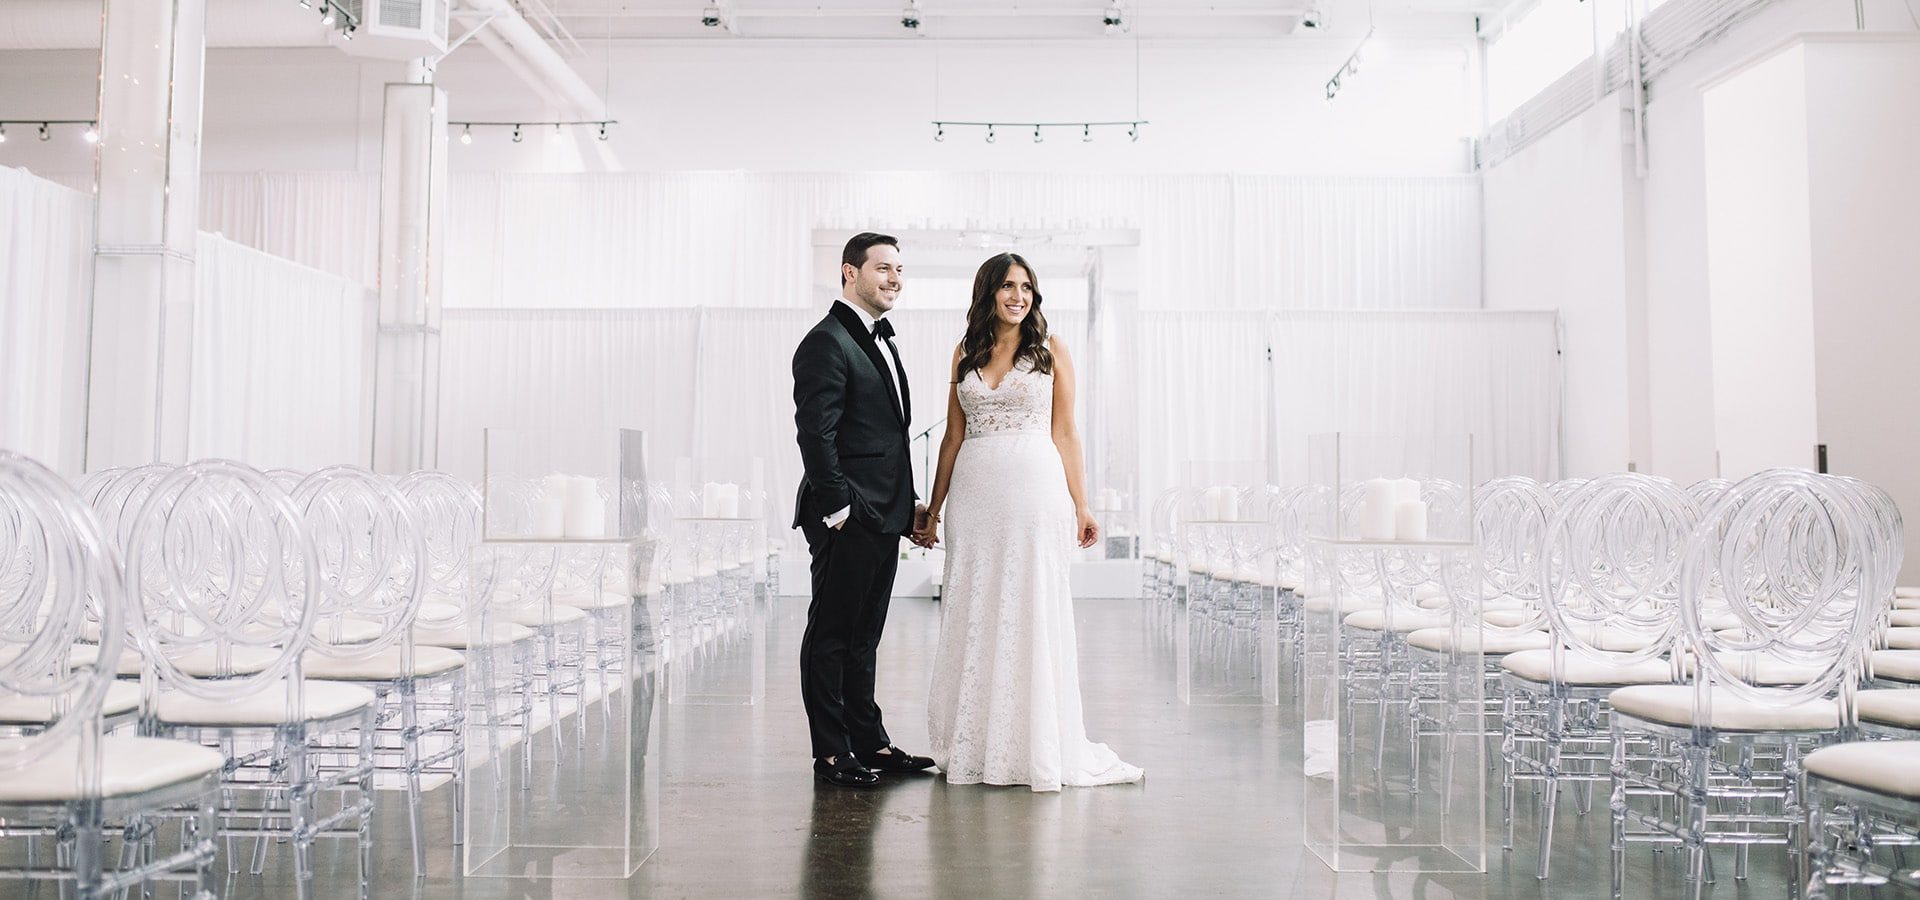 Hero image for Sami and Jordan's Romantic Wedding at The Warehouse Event Venue